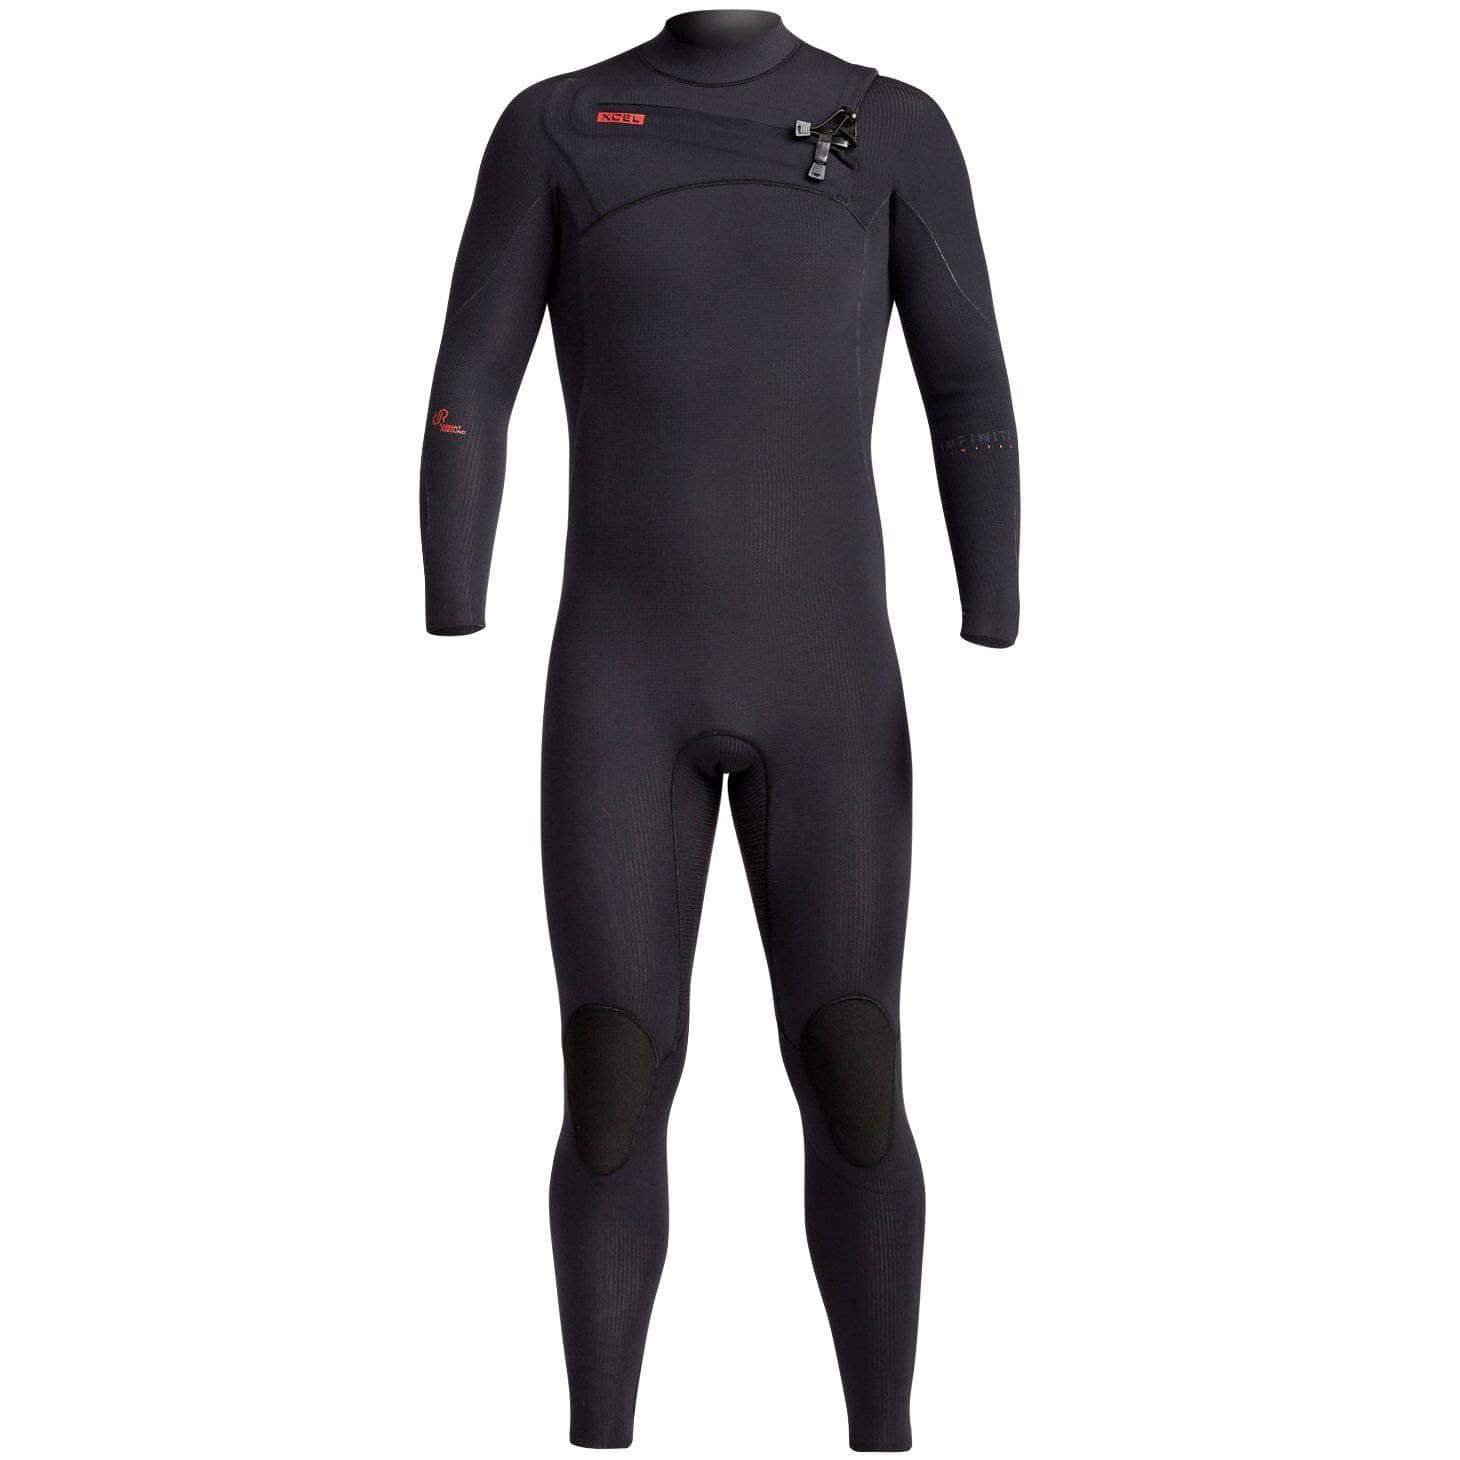 Xcel Mens Full Length Wetsuit Xcel Mens 5/4mm Infiniti Ltd Edition 2019/20 Wetsuit Black